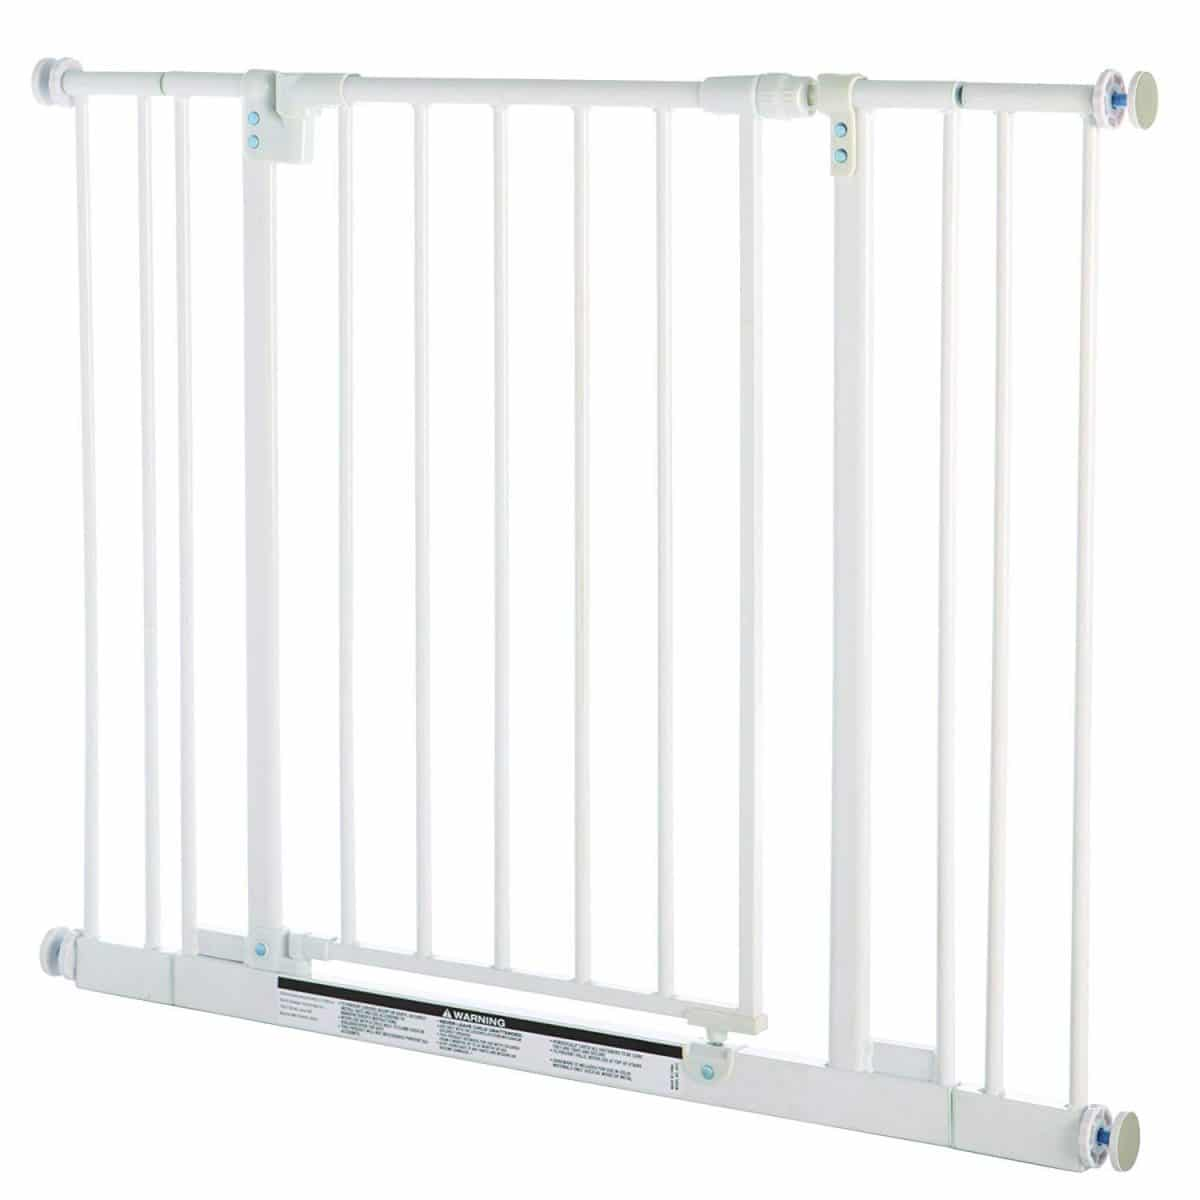 Add extension for a North States 3-Bar Extension for White Easy-Close Baby Gate